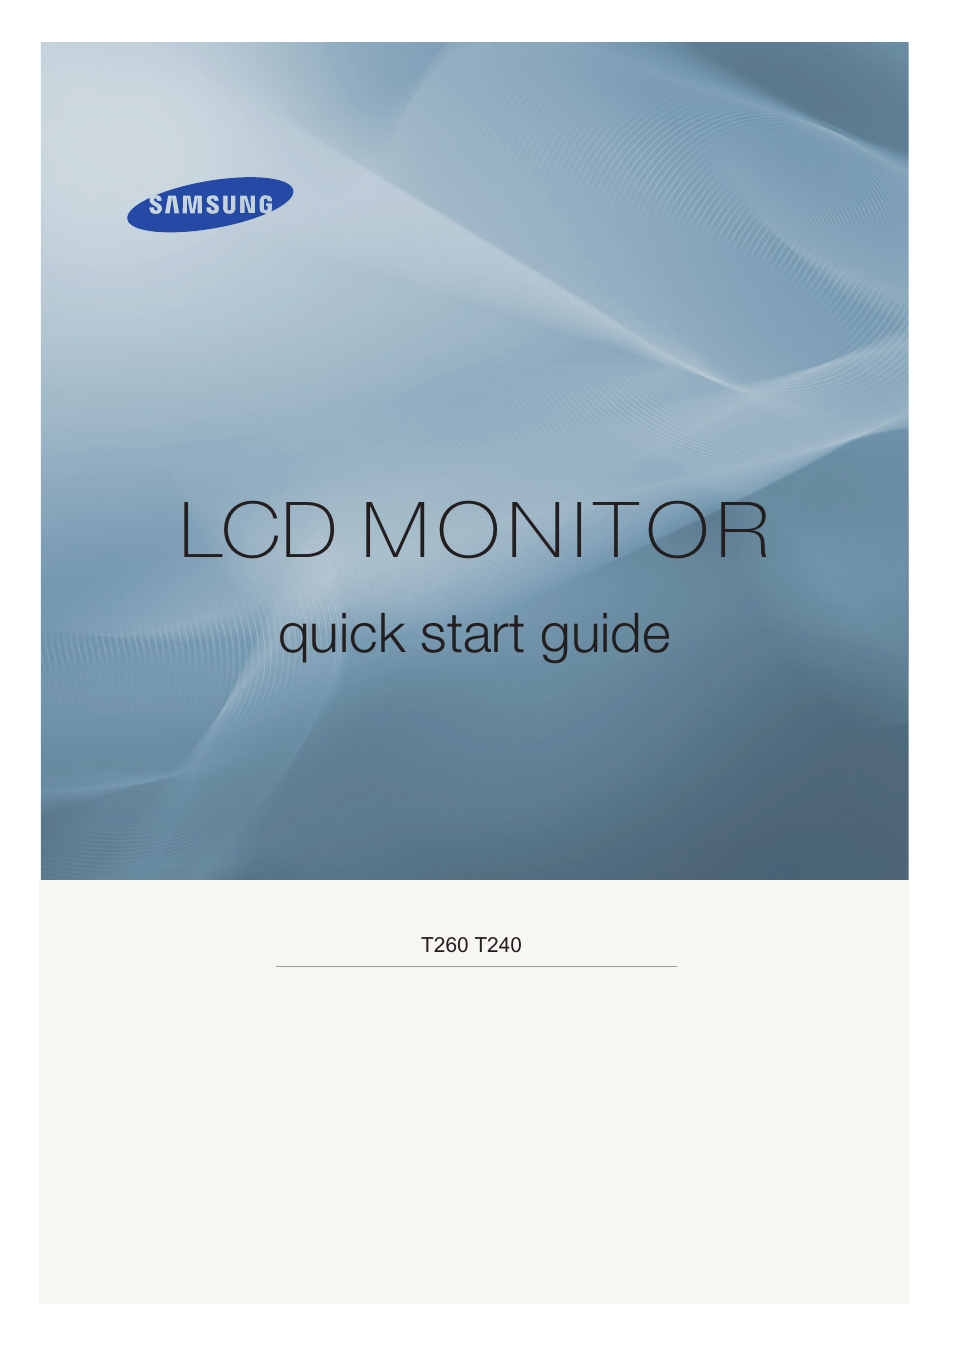 samsung ls26twhsuv za user manual 19 pages also for ls24twhsuv za rh manualsdir com Manual Samsung UN32EH4000F Manual Samsung UN32EH4000F